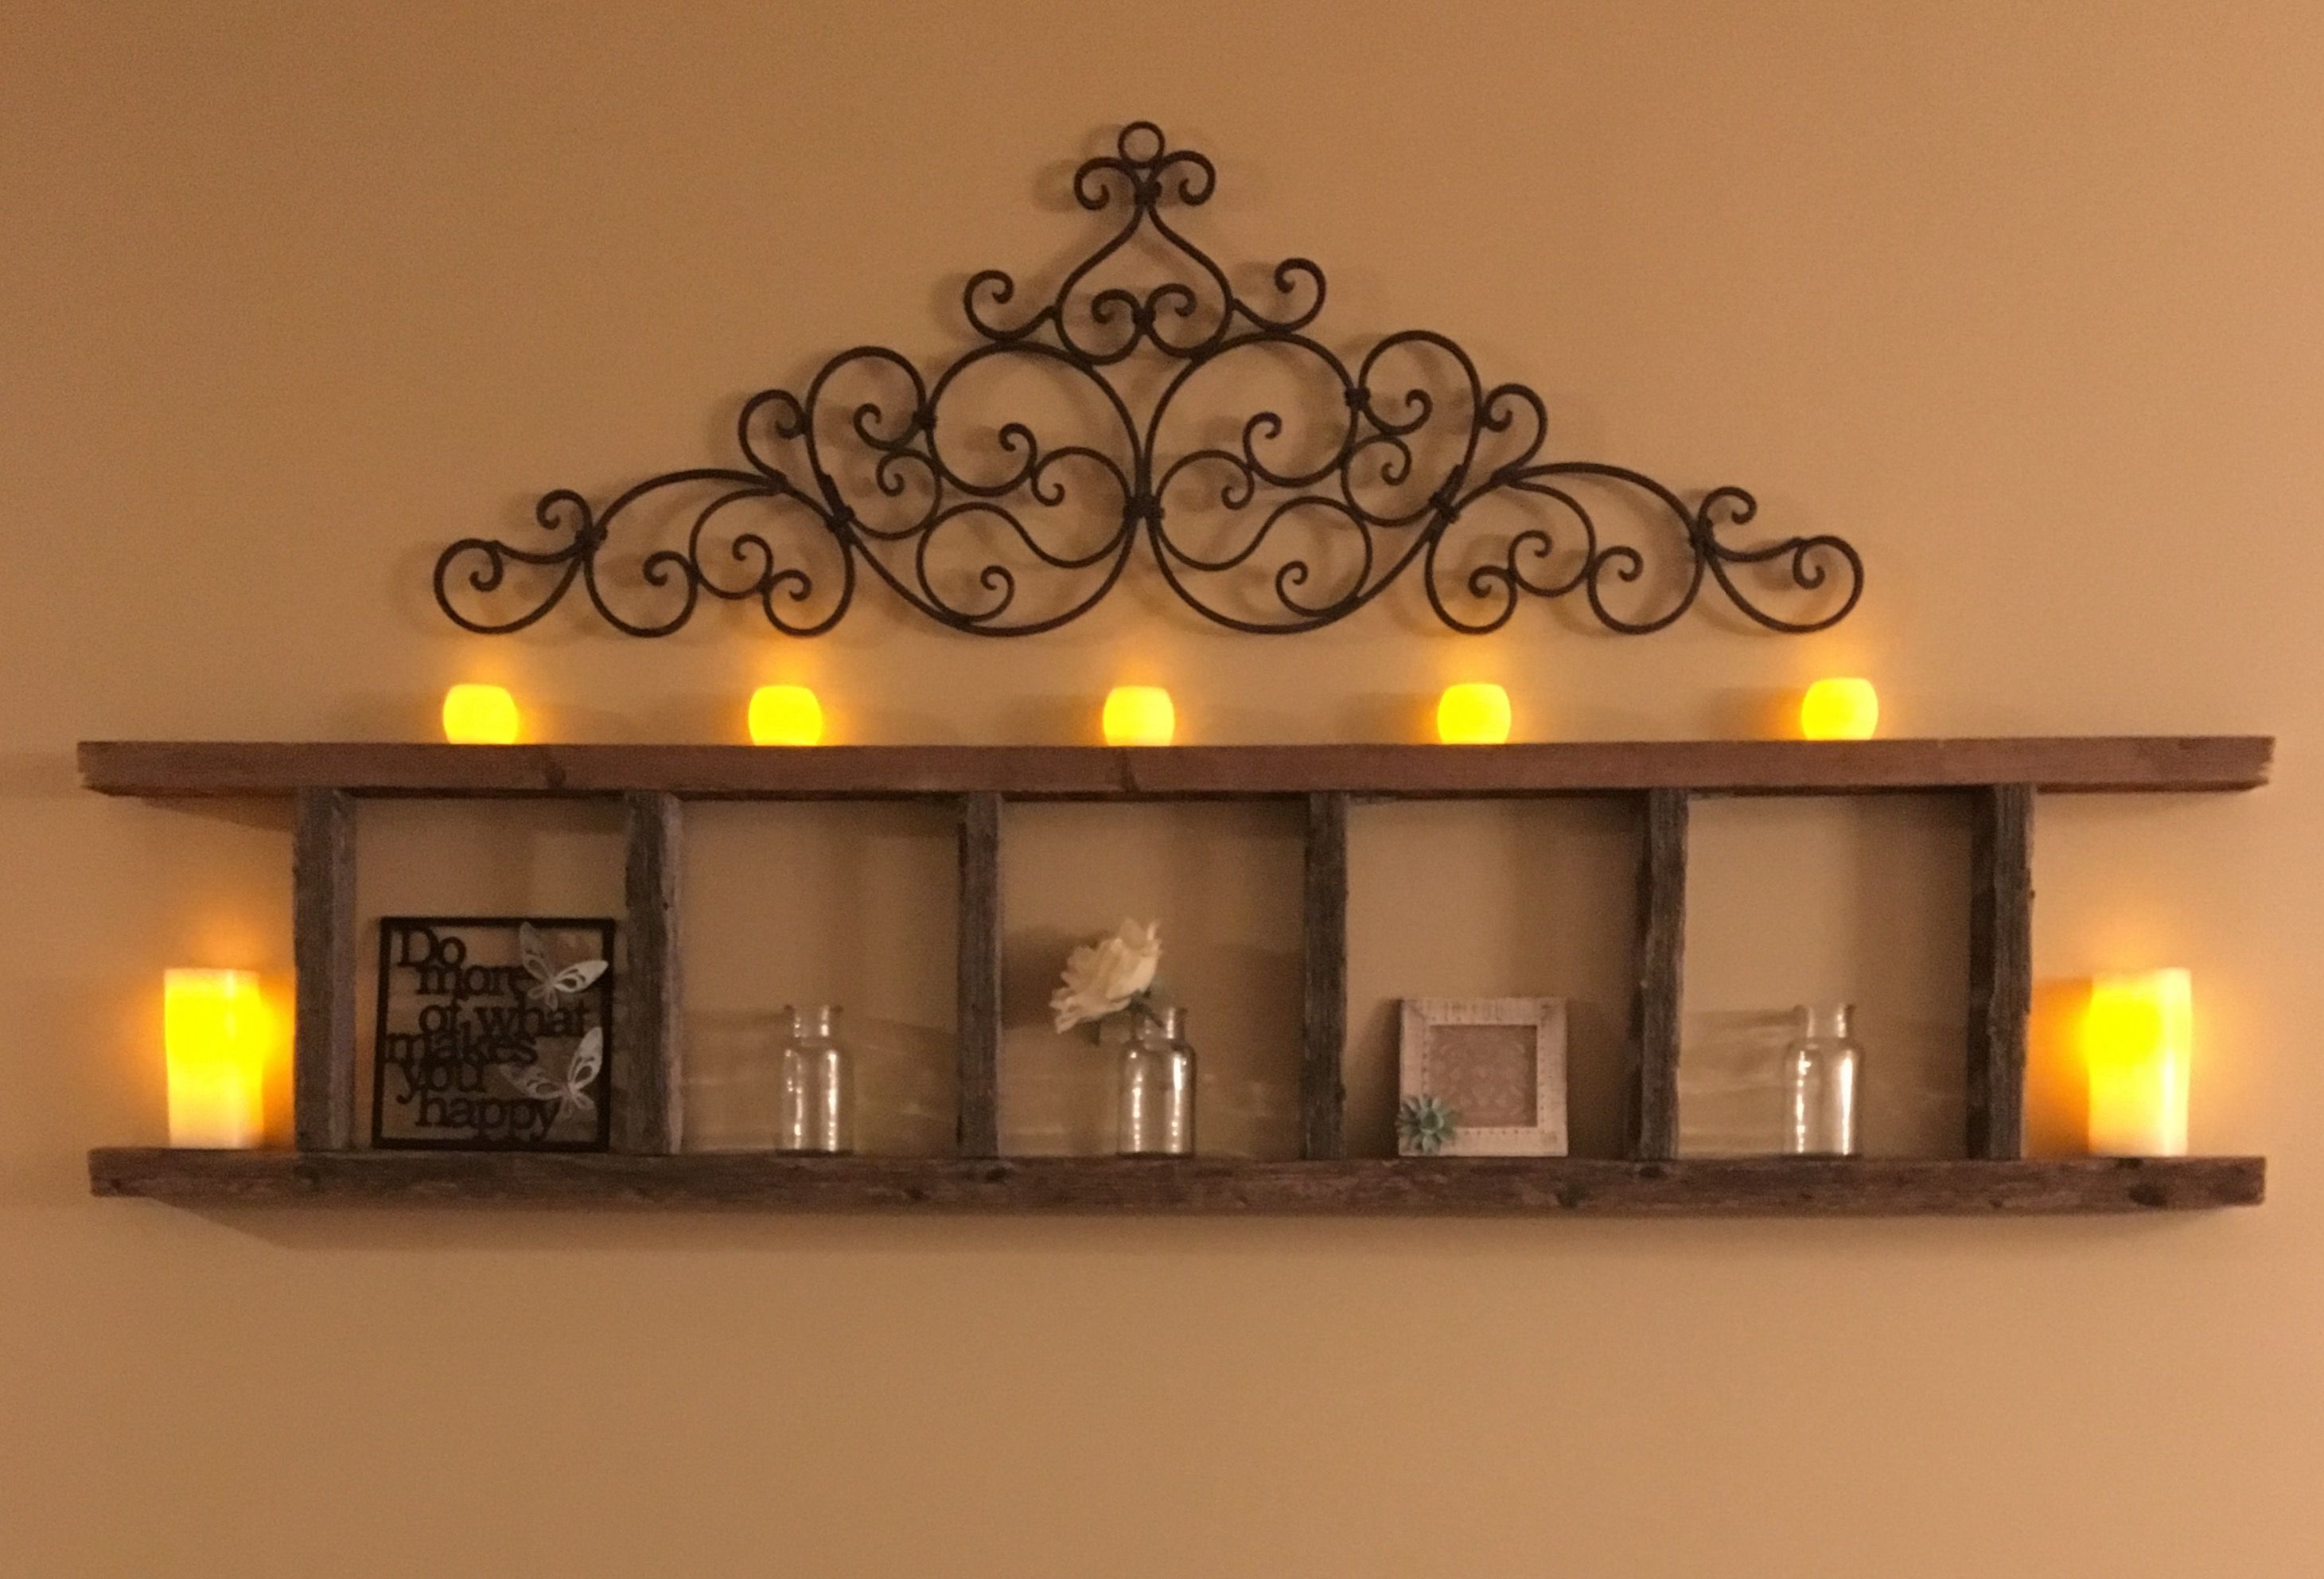 Wall art w candles lit javanus pinterest wall art art and lit